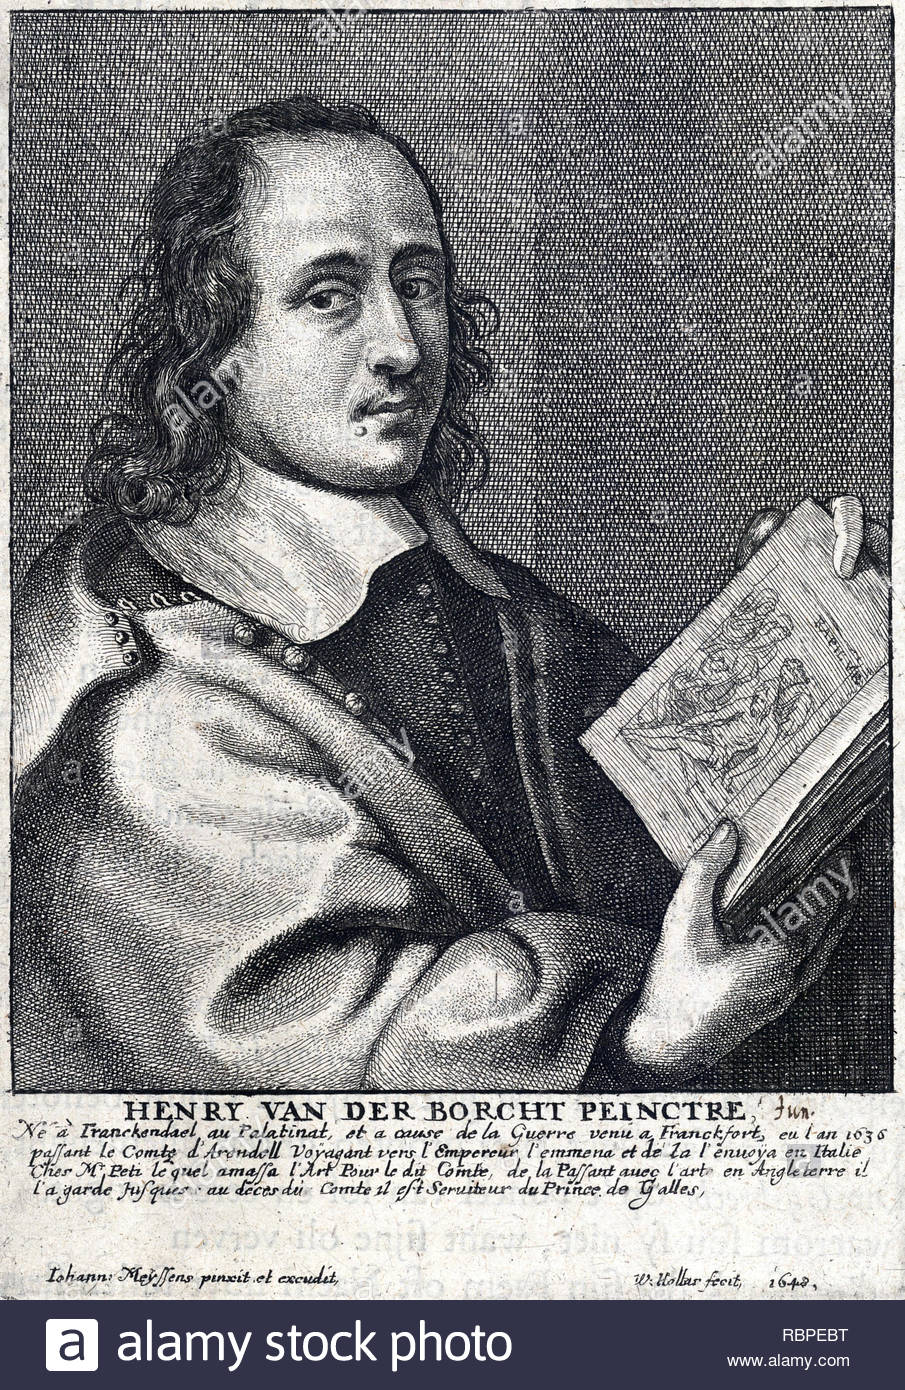 Henry van der Borcht the younger, etching by Bohemian etcher Wenceslaus Hollar from 1648 - Stock Image